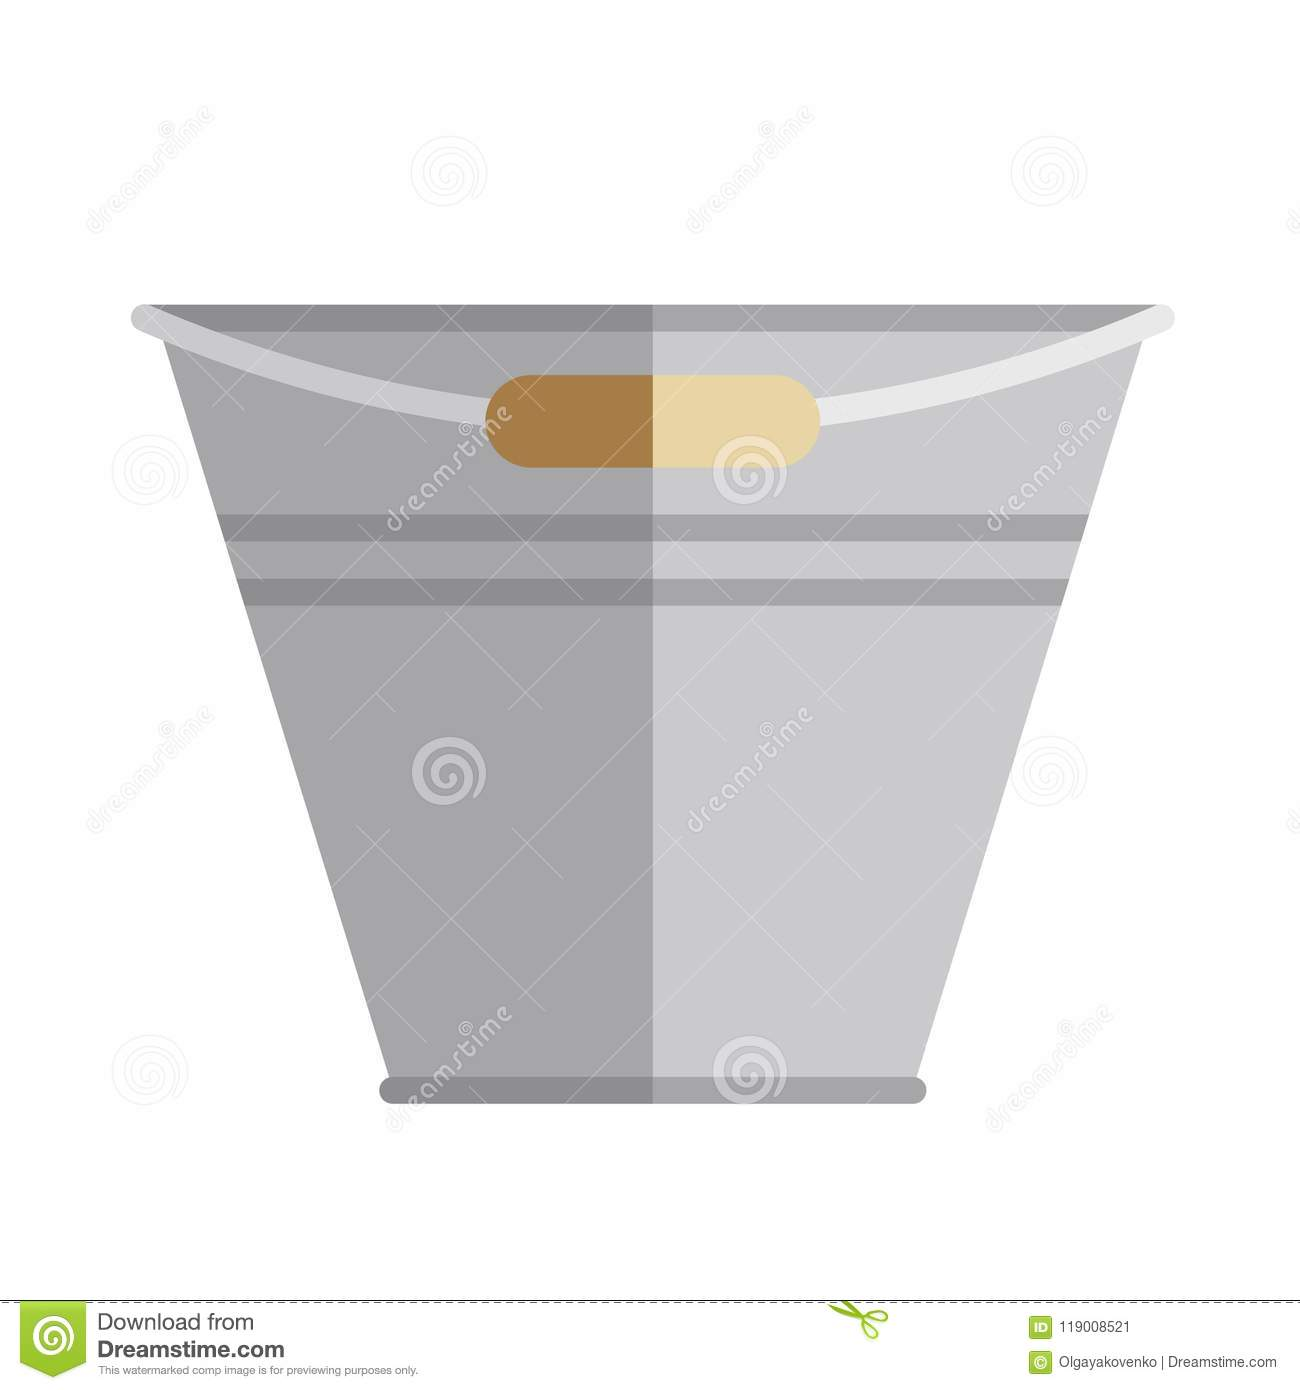 Download Garden Bucket, Pail Icon, Flat Style. Stock Vector   Illustration  Of Design